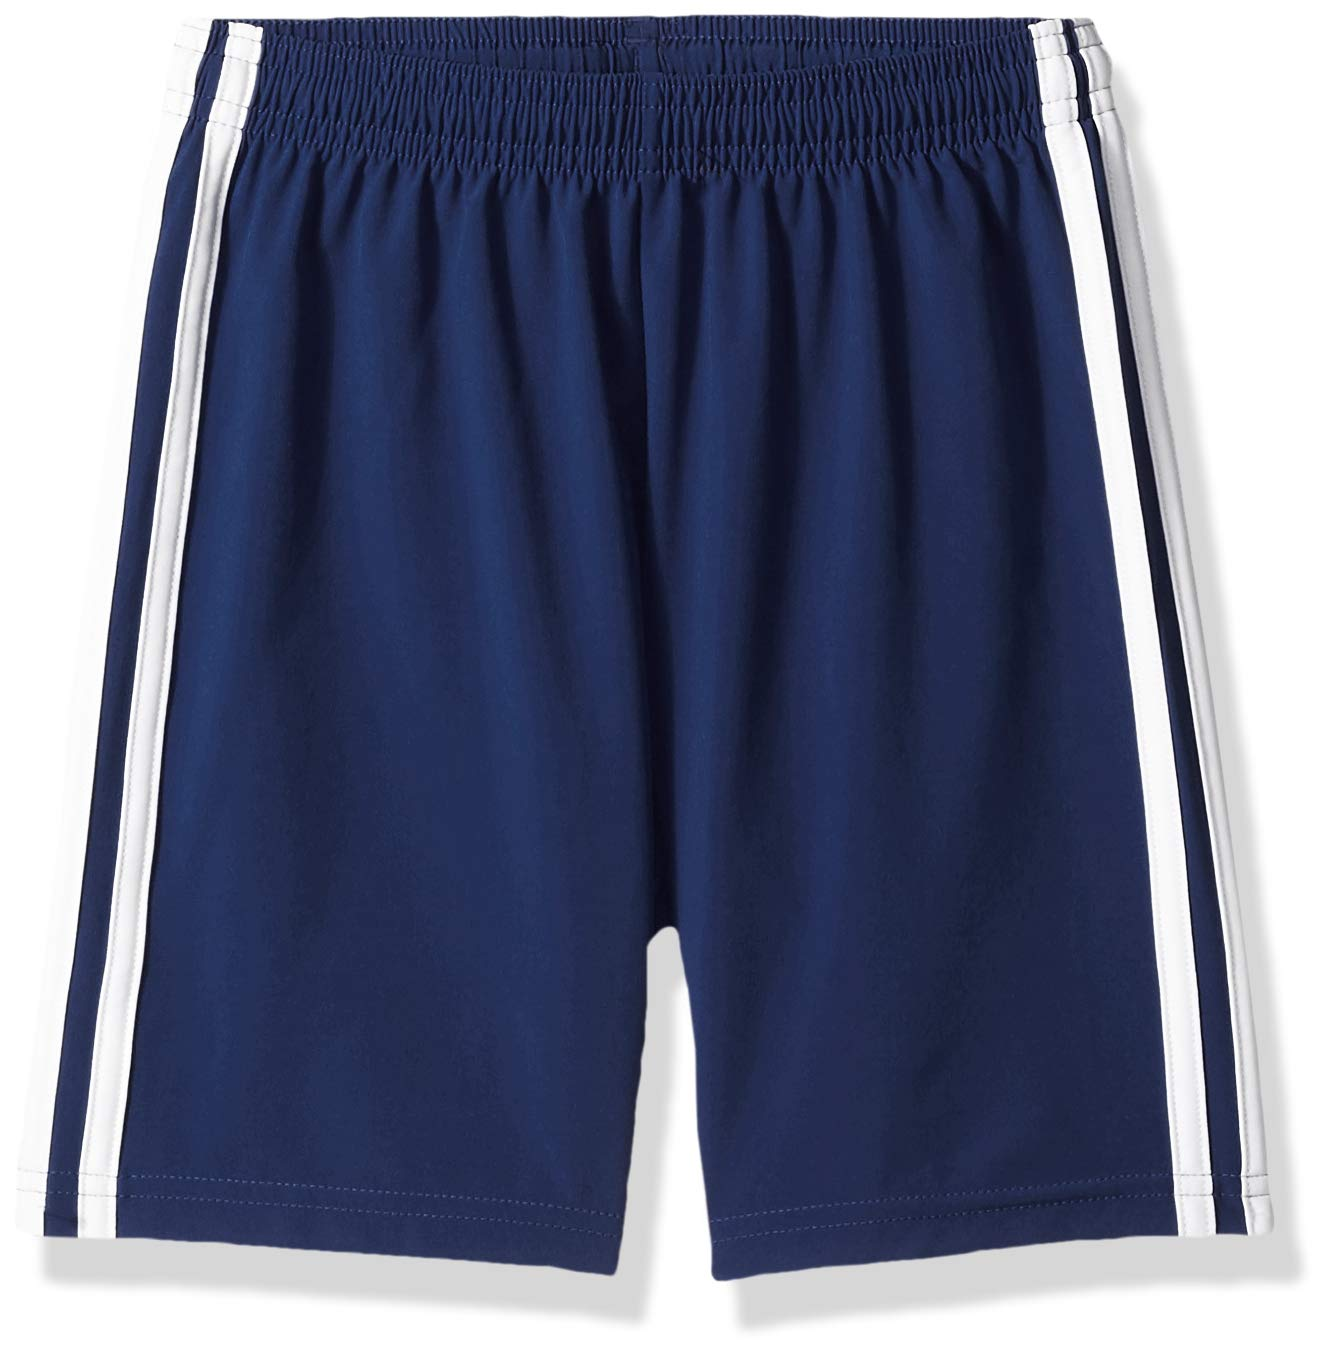 adidas Youth Condivo18 Youth Soccer Shorts, Dark Blue/White, Large by adidas